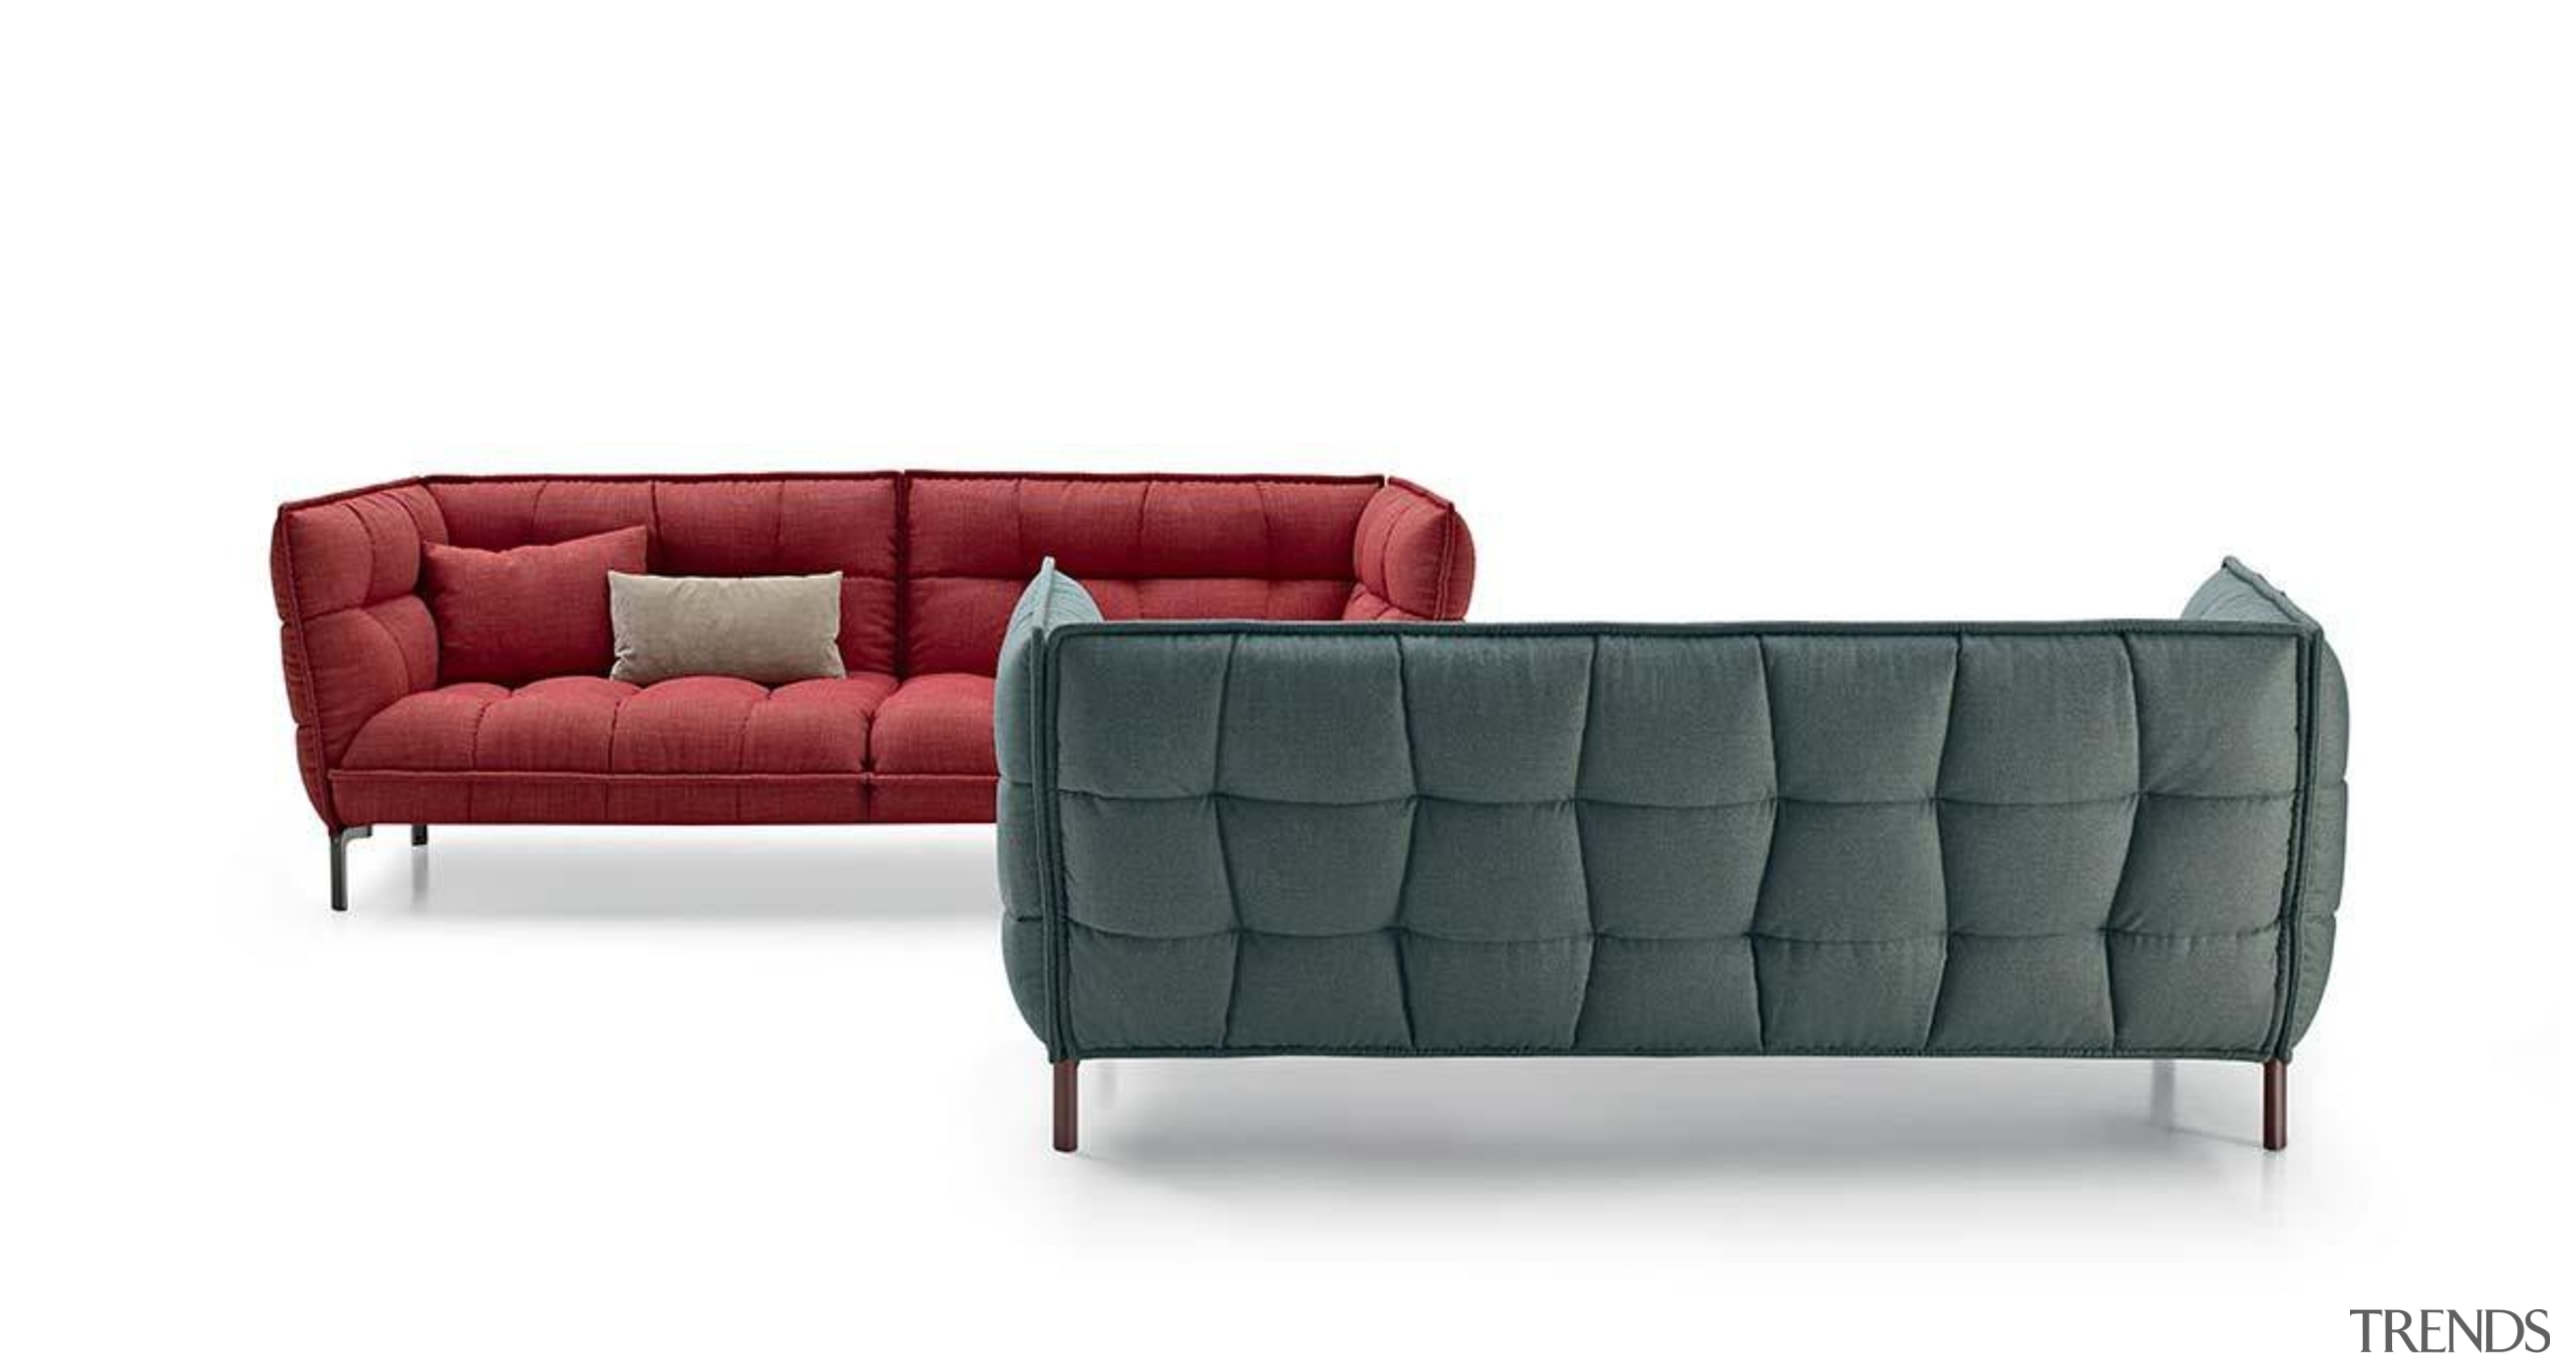 Husk sofa by Patricia Urquiola for B&B Italia angle, couch, furniture, loveseat, product, product design, sofa bed, white